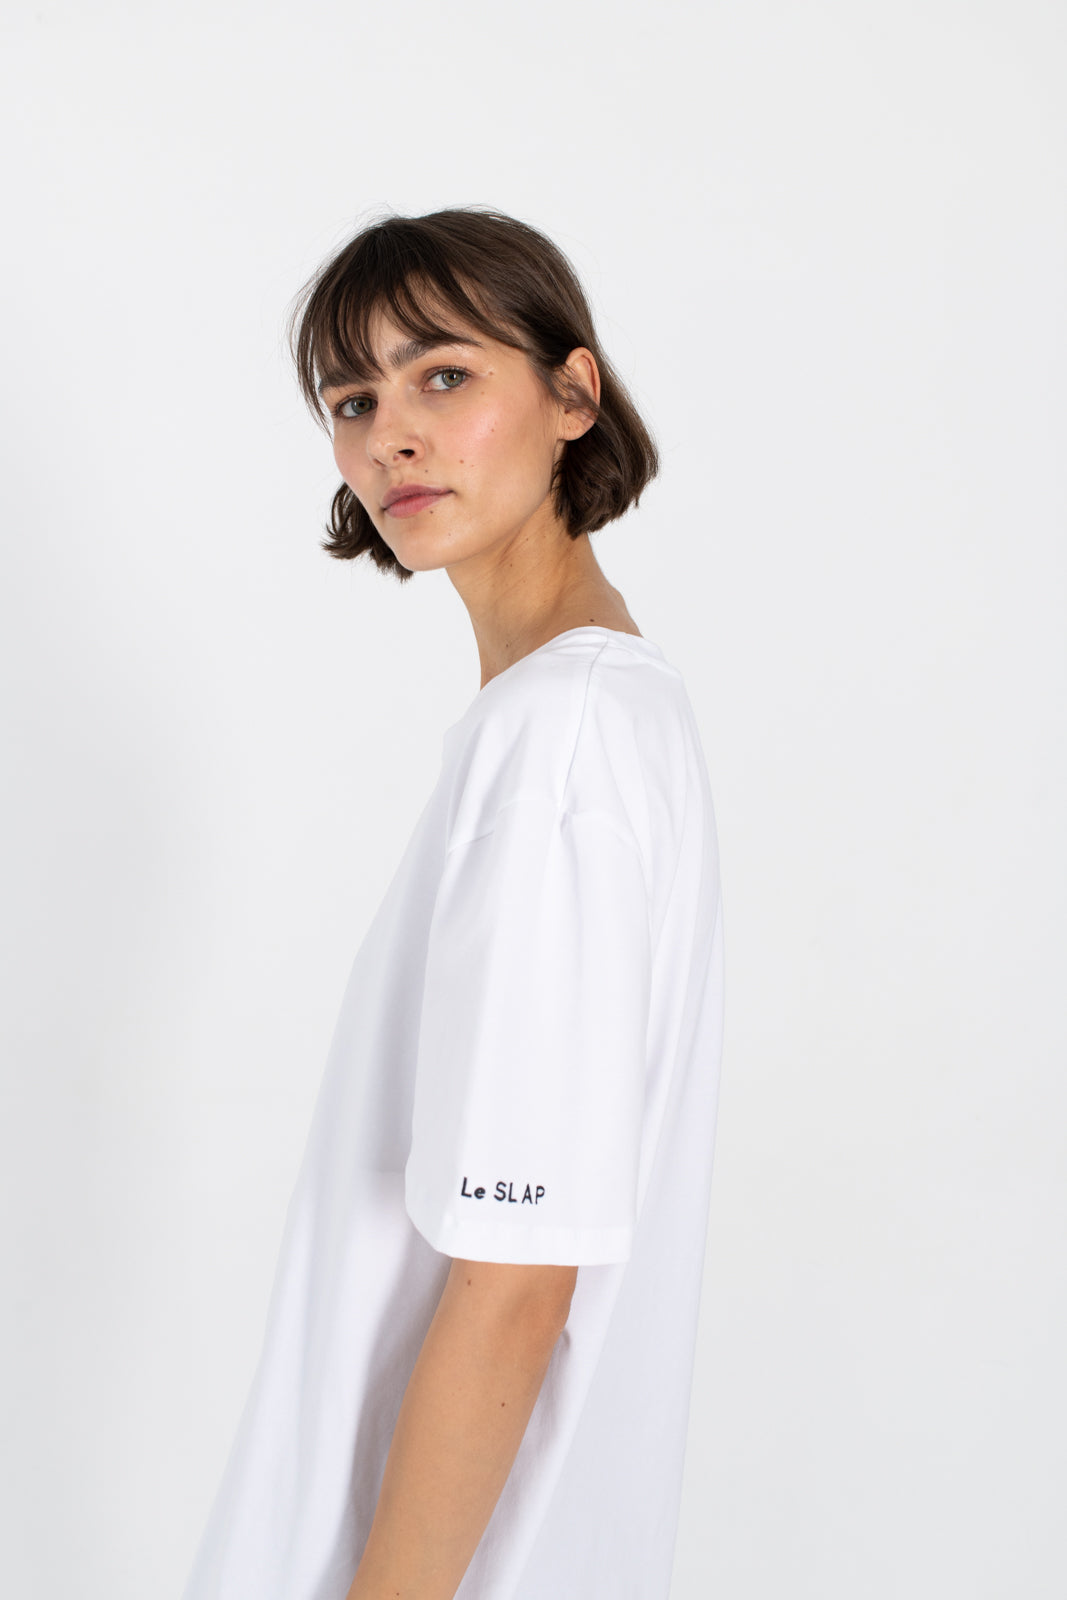 SHAKESPEARE-White-oversize-tshirt-le-slap-leave-drama-to-shakespeare-summer-top-clothing.jpg